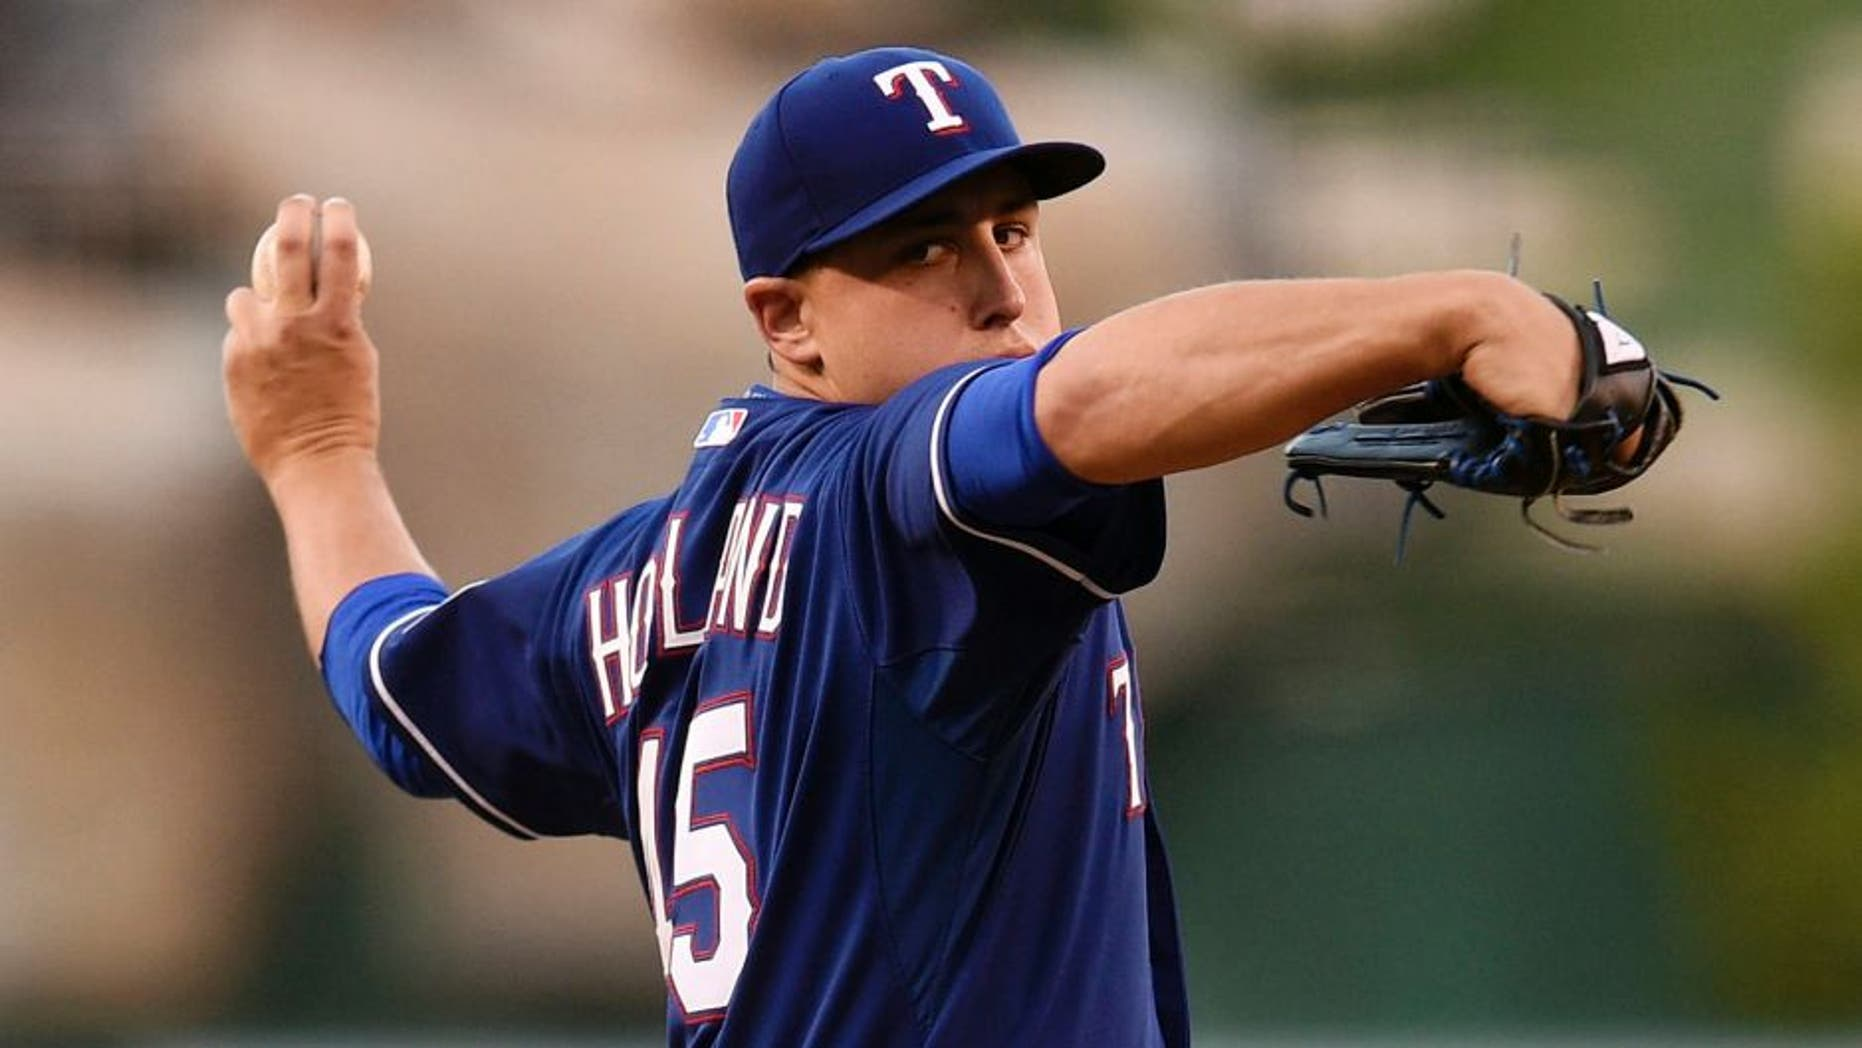 Sep 5, 2015; Anaheim, CA, USA; Texas Rangers starting pitcher Derek Holland (45) pitches against the Los Angeles Angels during the first inning at Angel Stadium of Anaheim. Mandatory Credit: Kelvin Kuo-USA TODAY Sports